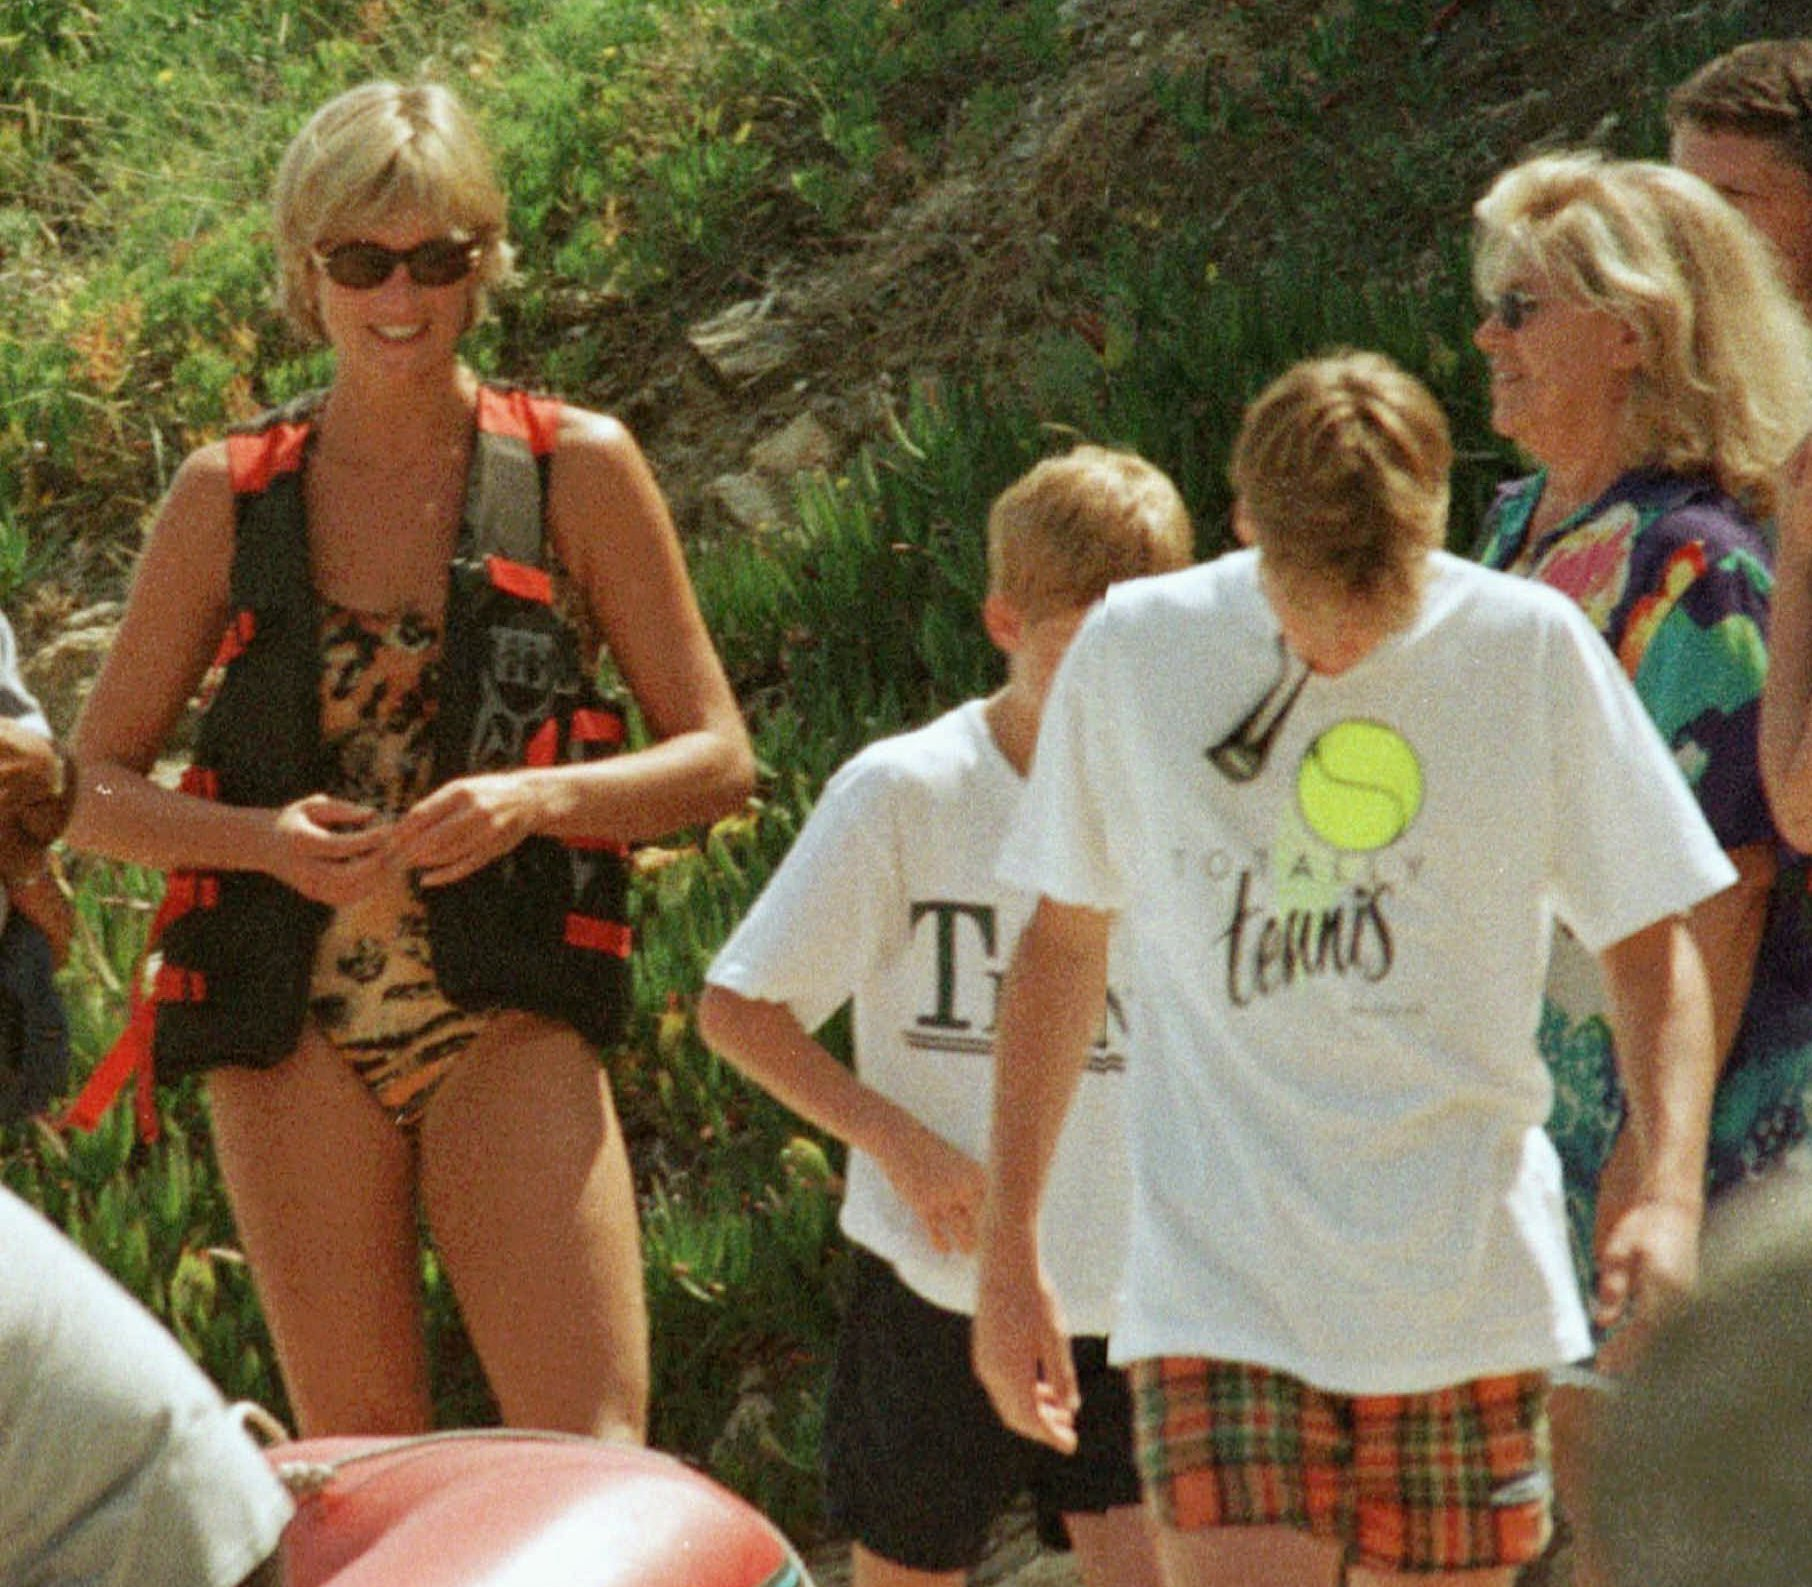 Britain's Princess Diana looks at her two sons Prince William, right, and Prince Harry, at Saint Tropez, on the French Riviera, Monday July 14, 1997, where she is spending a few days vacationing and staying at the residence of Egyptian businessman Mohamed Al Fayed.